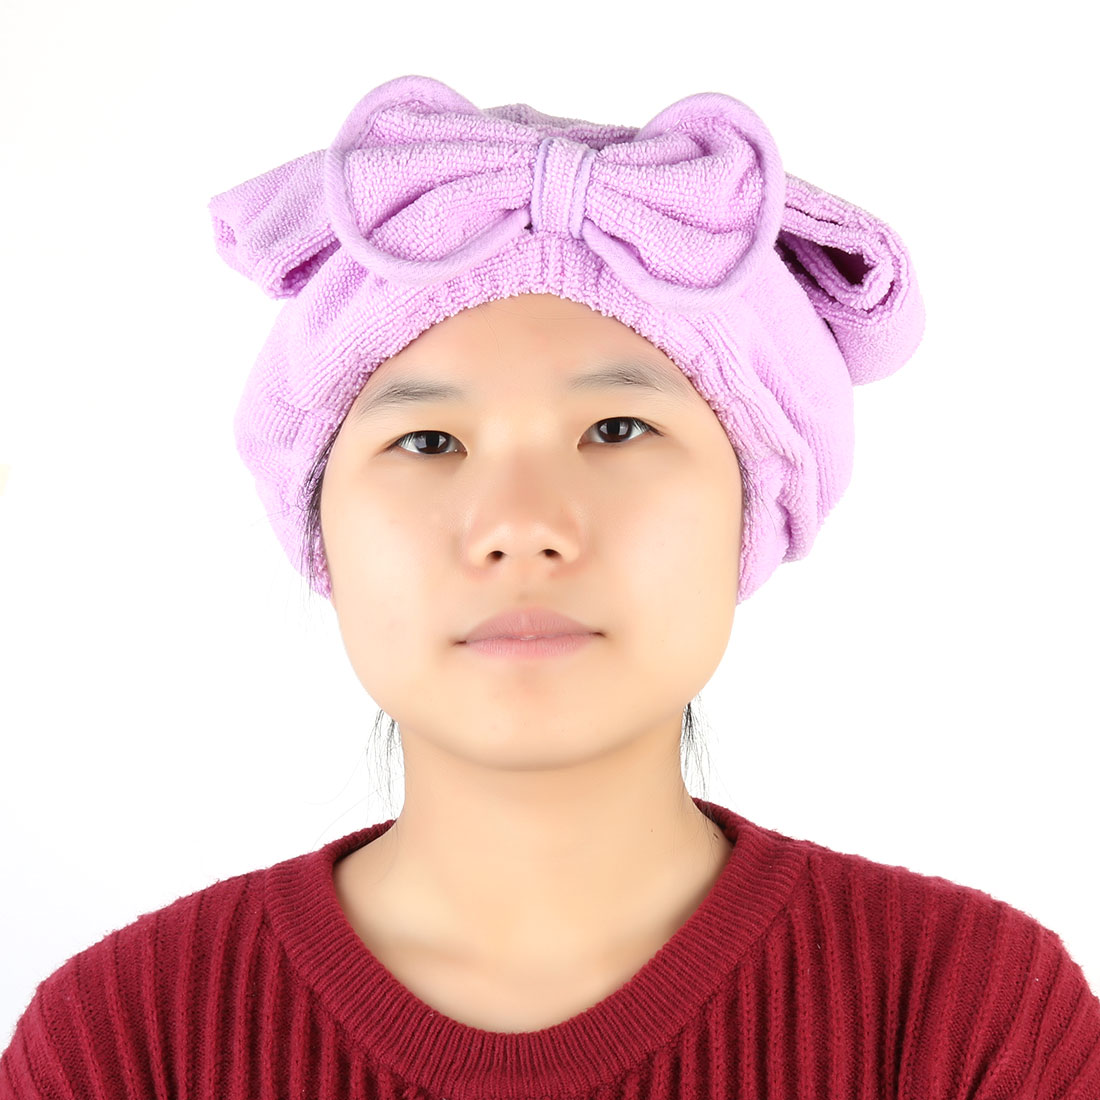 Bathing Butterfly Knot Decor Elastic Band Dry Hair Cap Towel